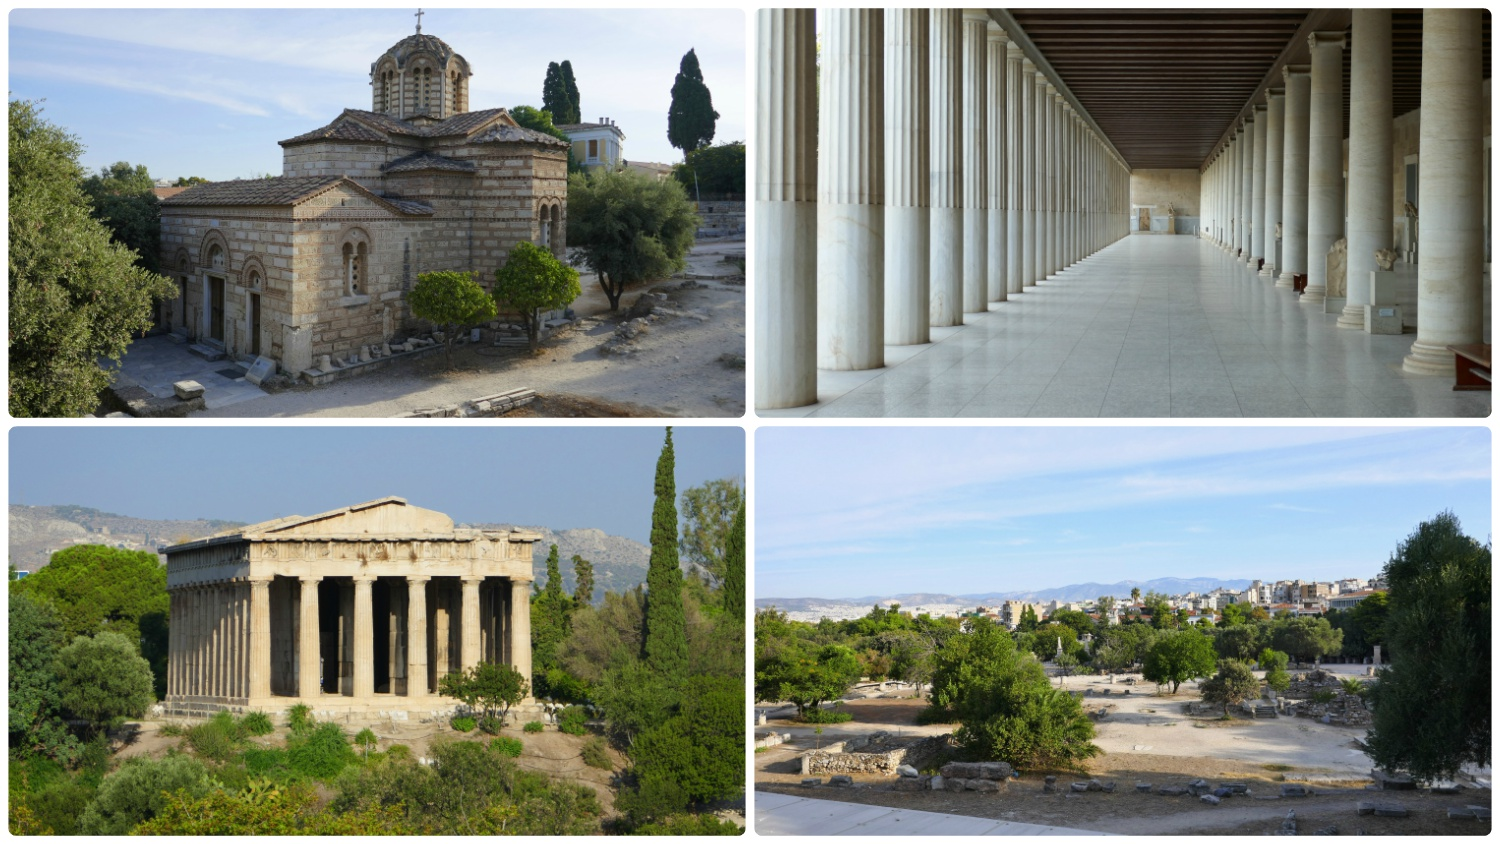 The Ancient Agora of Athens is included in the Athens Combined Ticket. When you explore the ruins here, you'll find the Church of the Holy Apostles (top left image), Stoa of Attalos (top right image), and the Hephaestus Temple (bottom left image).